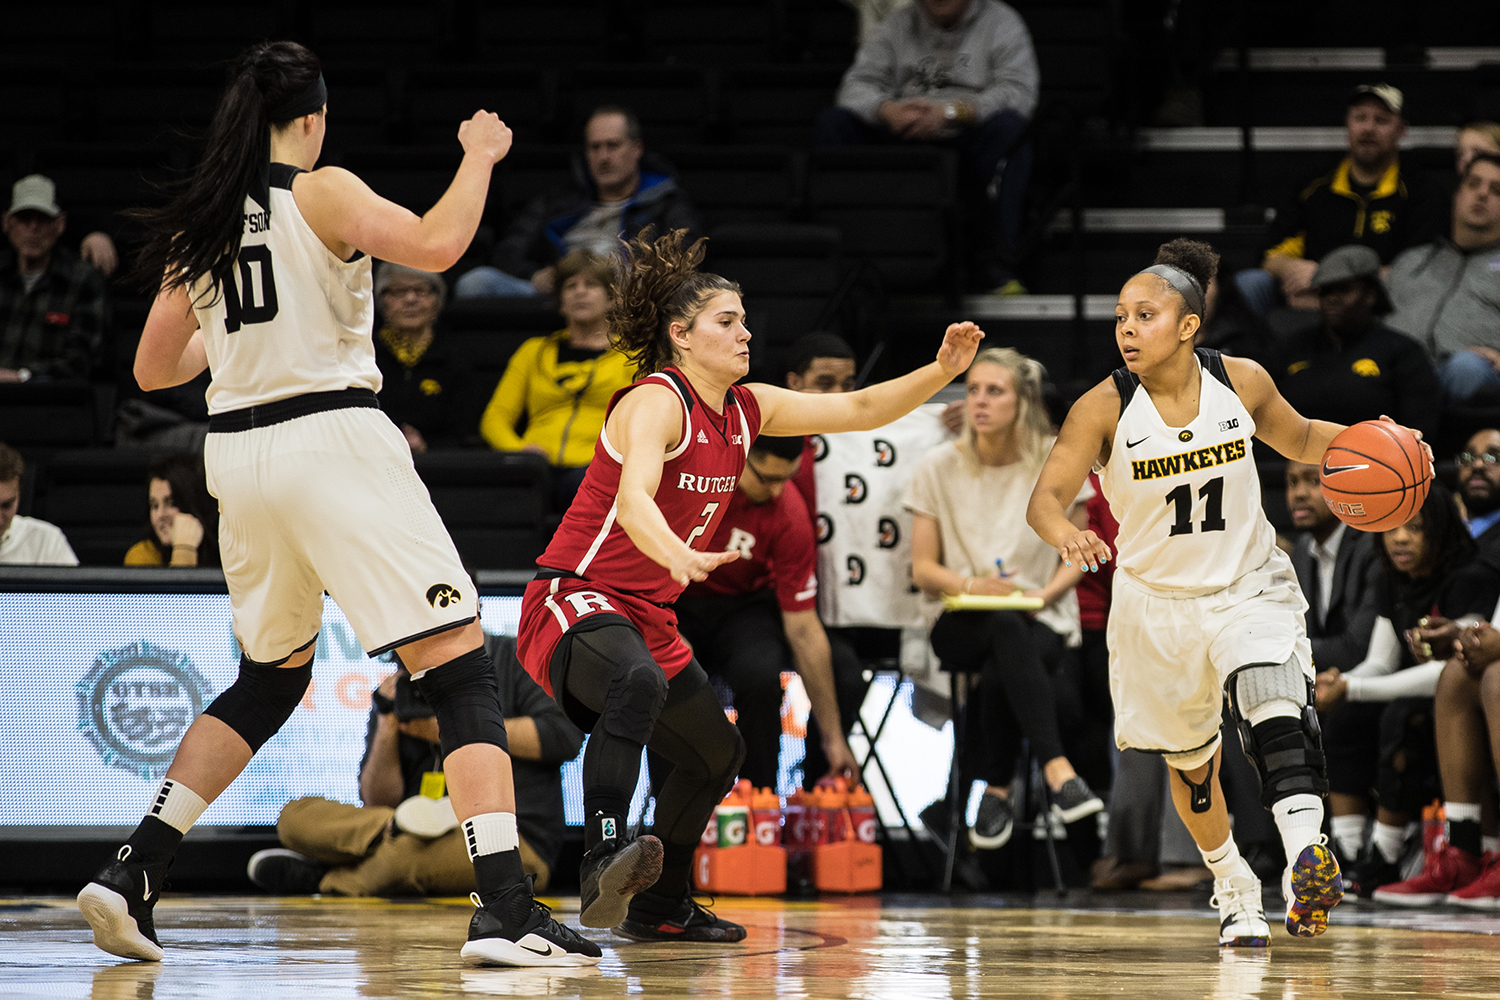 Iowa guard Tania Davis dribbles through the defense during a women's basketball matchup between Iowa and Rutgers at Carver-Hawkeye Arena on Wednesday, January 23, 2019. The Hawkeyes defeated the Scarlet Knights, 72-66.